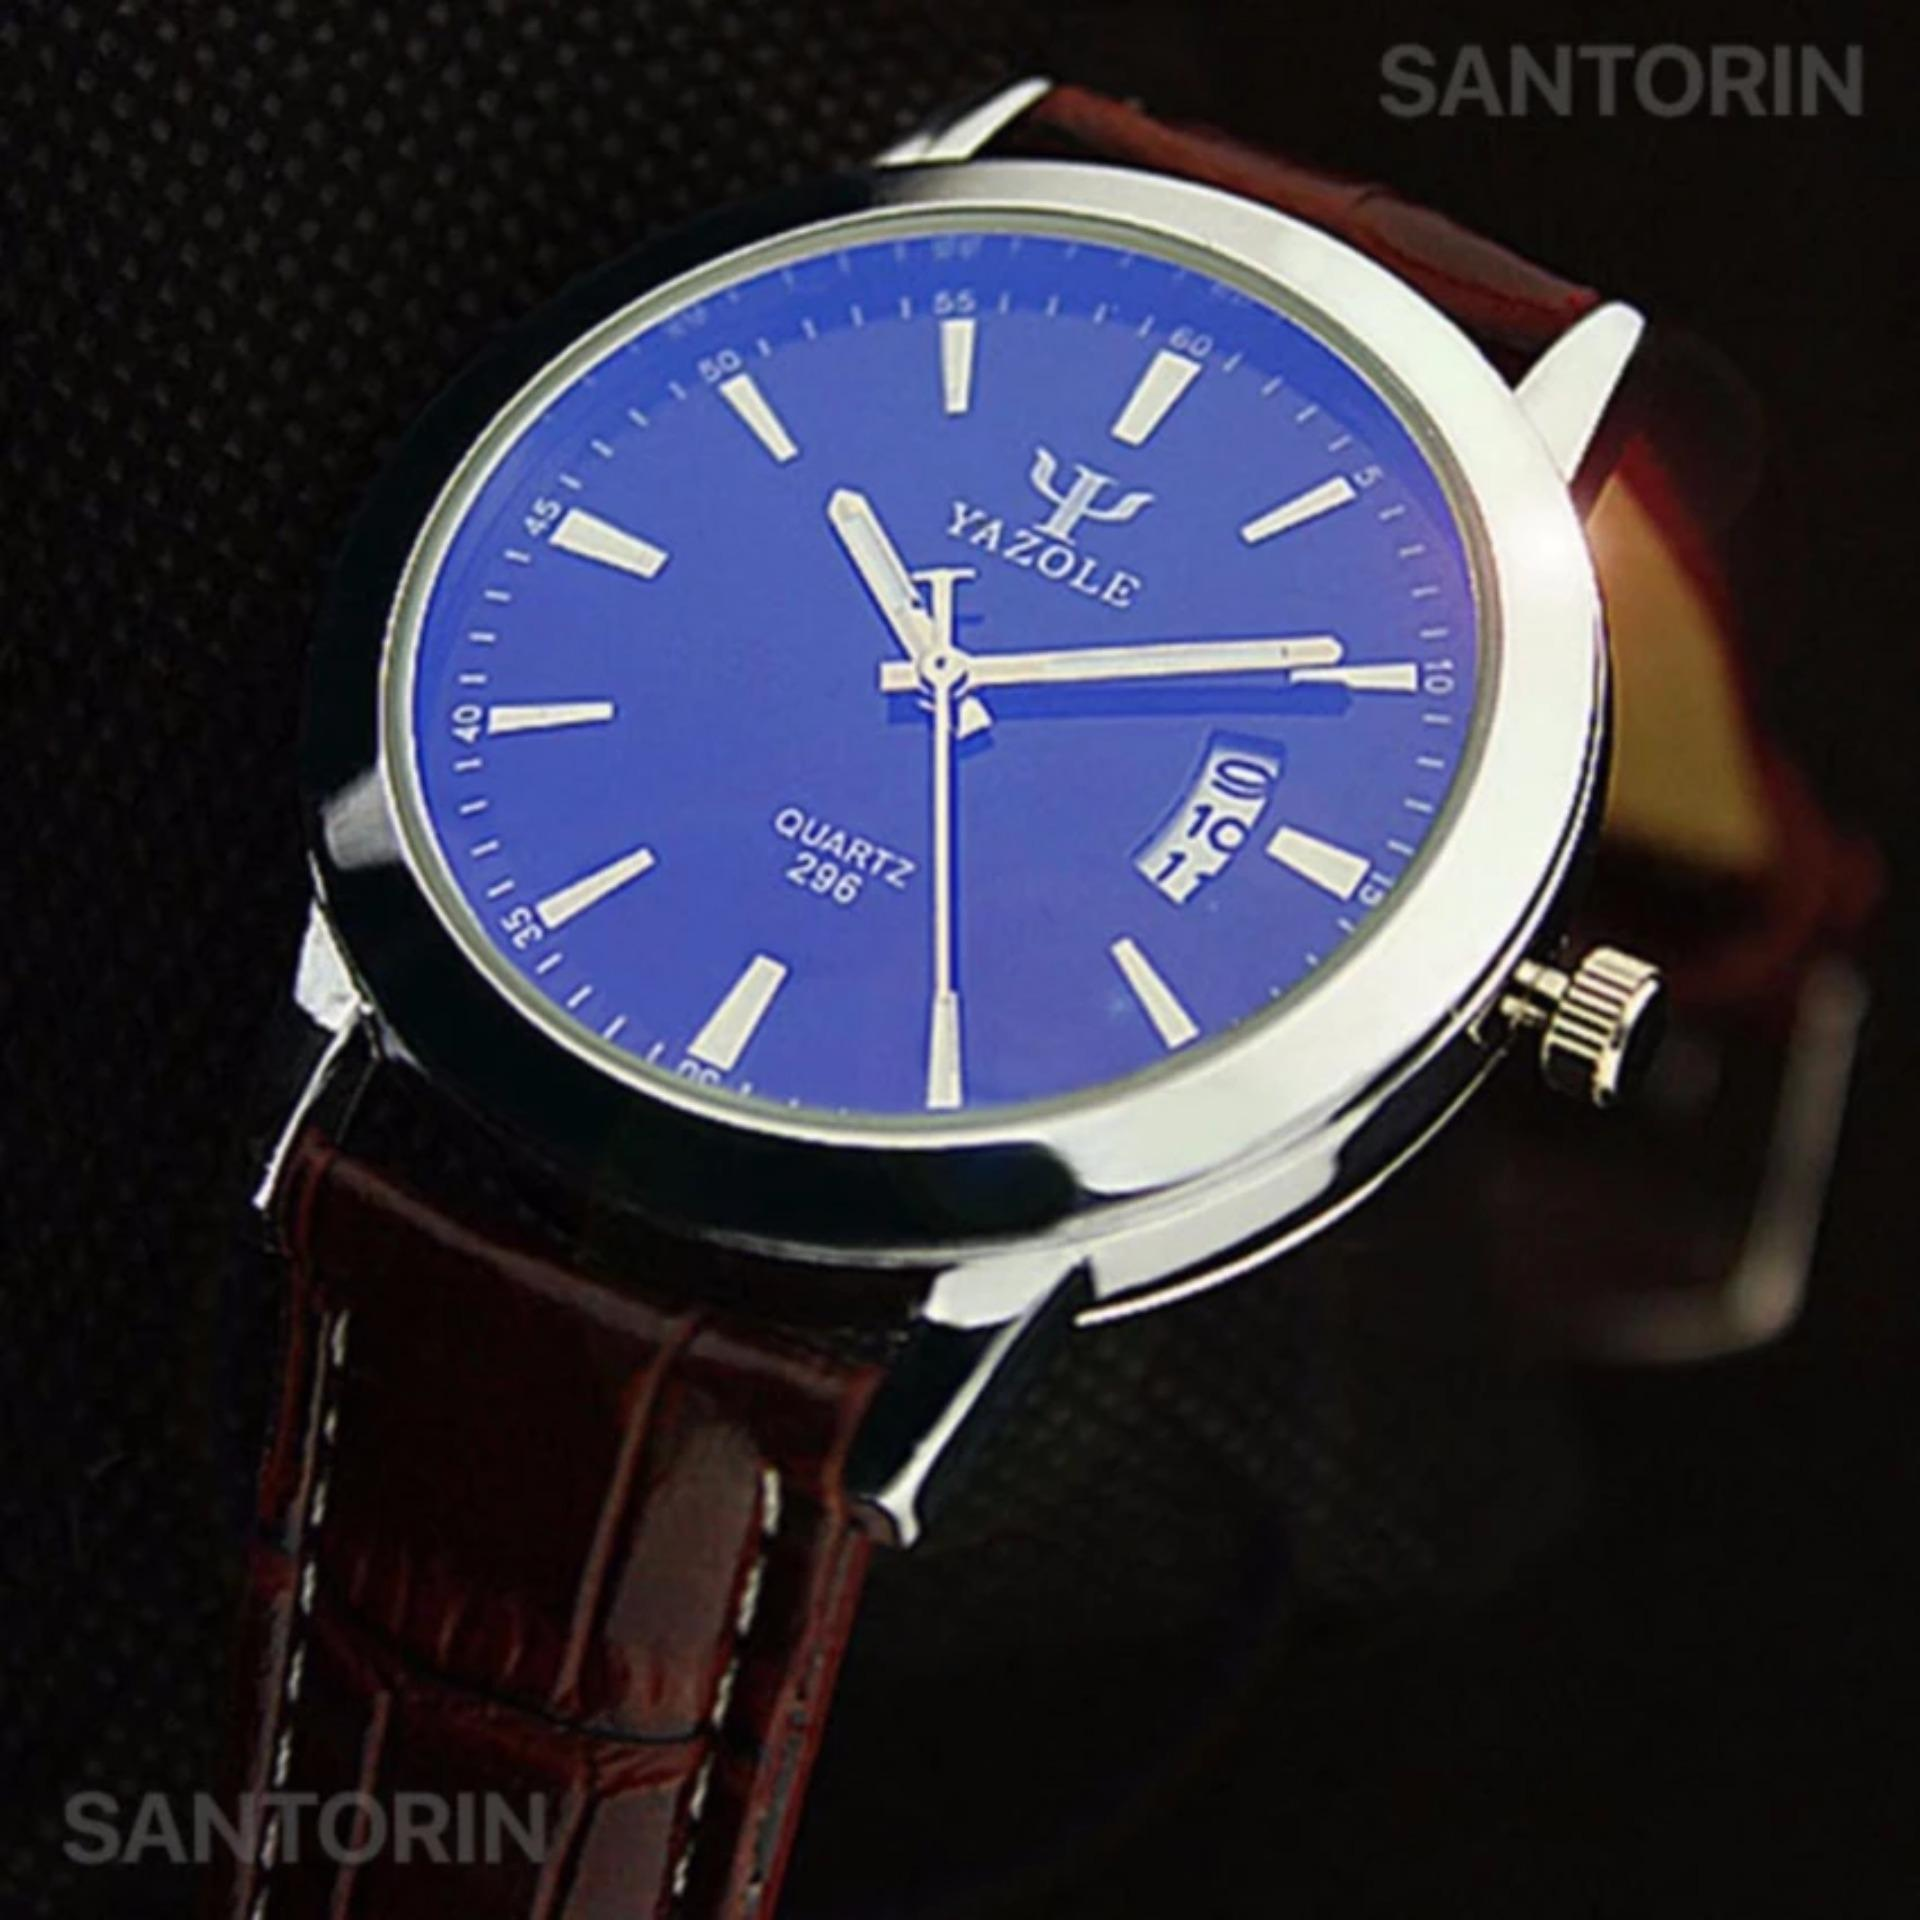 ... 296 Kualitas Merek Watch Pria Watches Male Clock Leather Strap Quartz Watch Pergelangan Tangan Kalender Tanggal ...